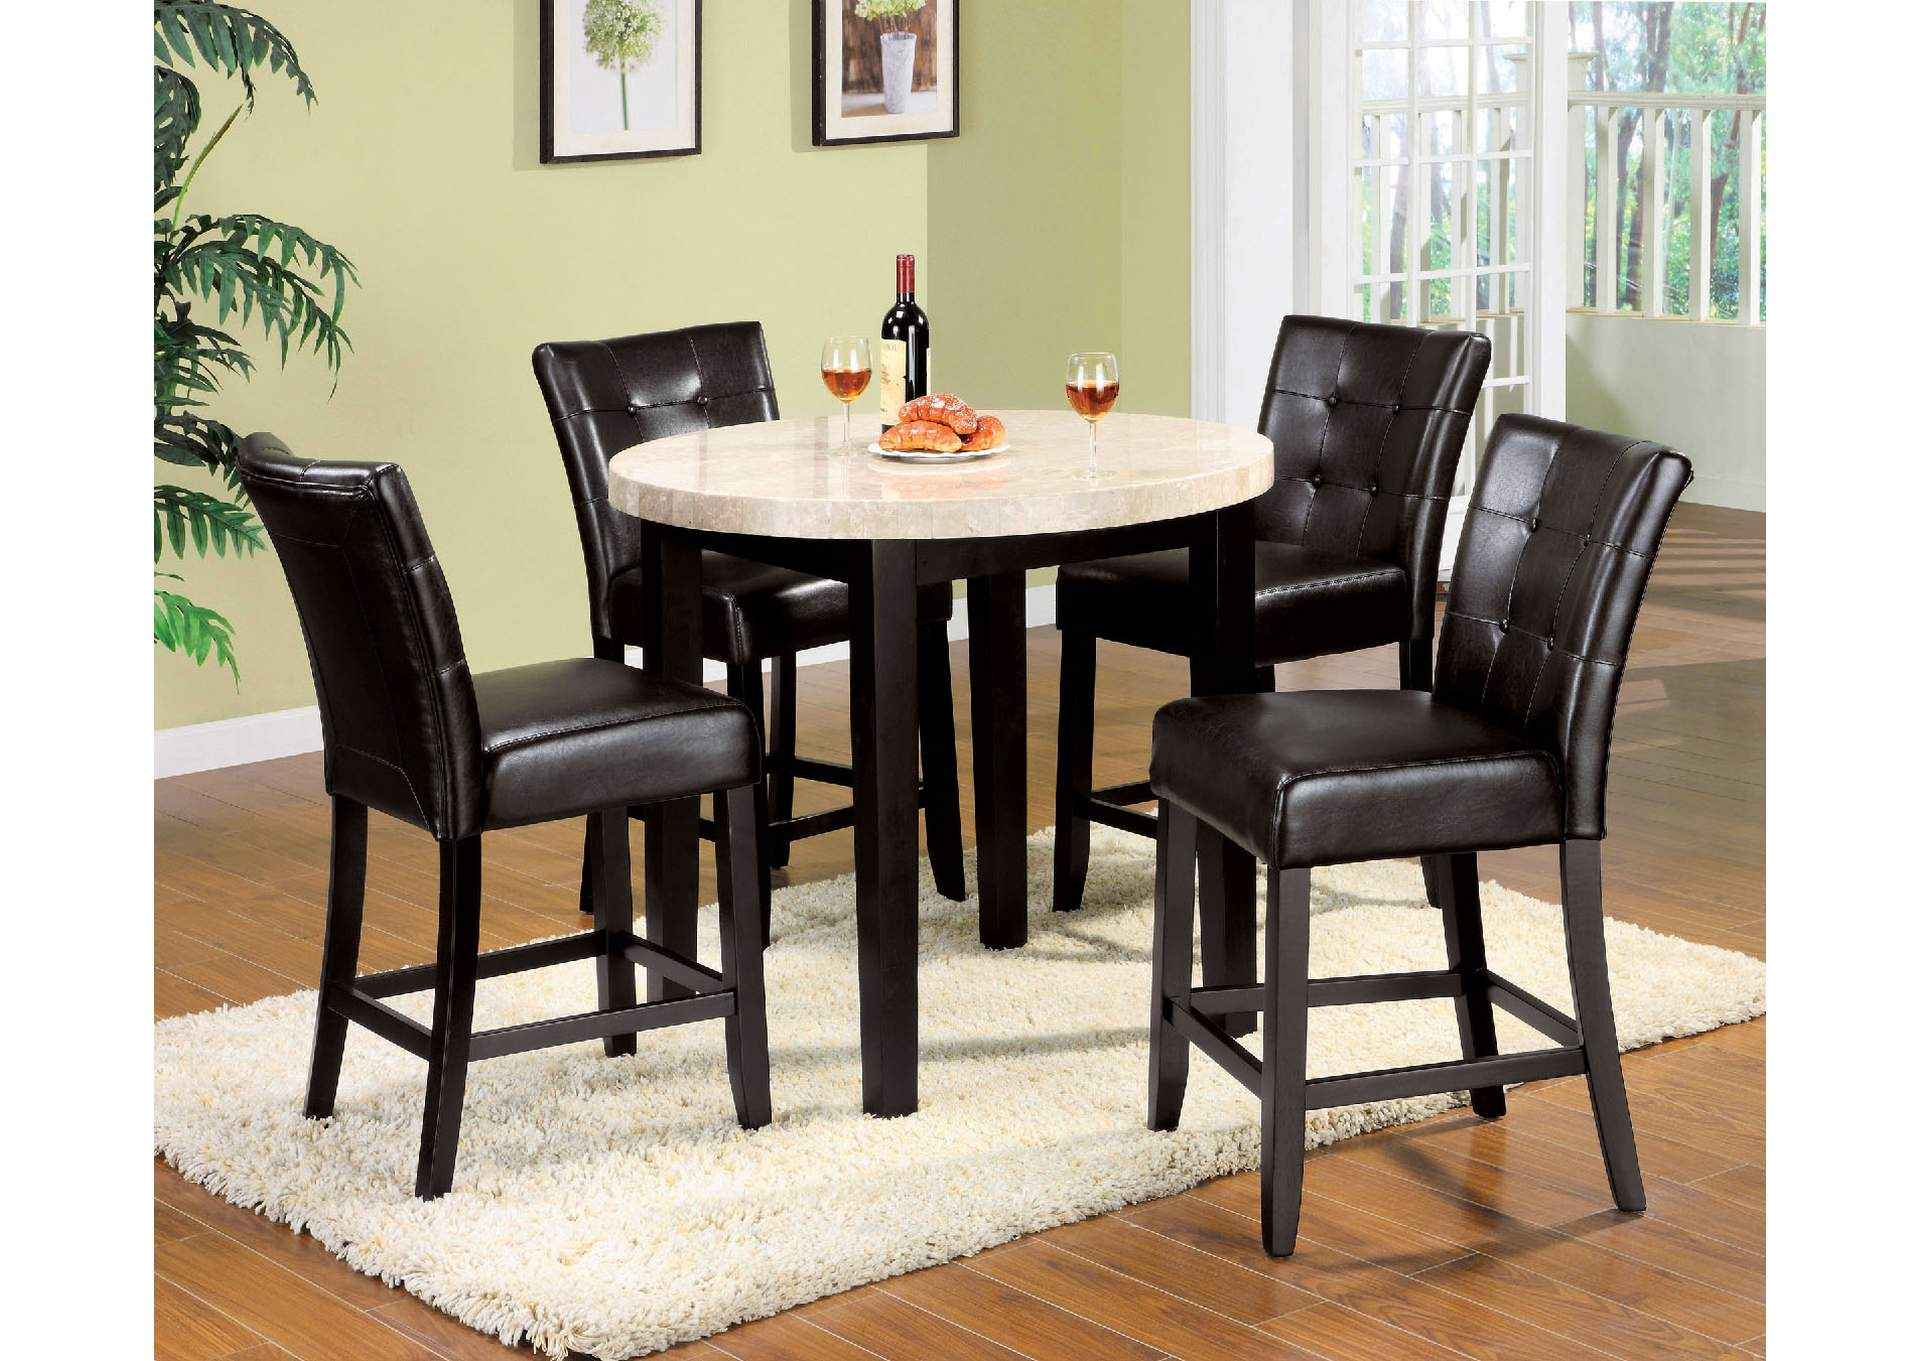 ... Counter Height Chairs. $69.00 Per Month. Marion Ll 40